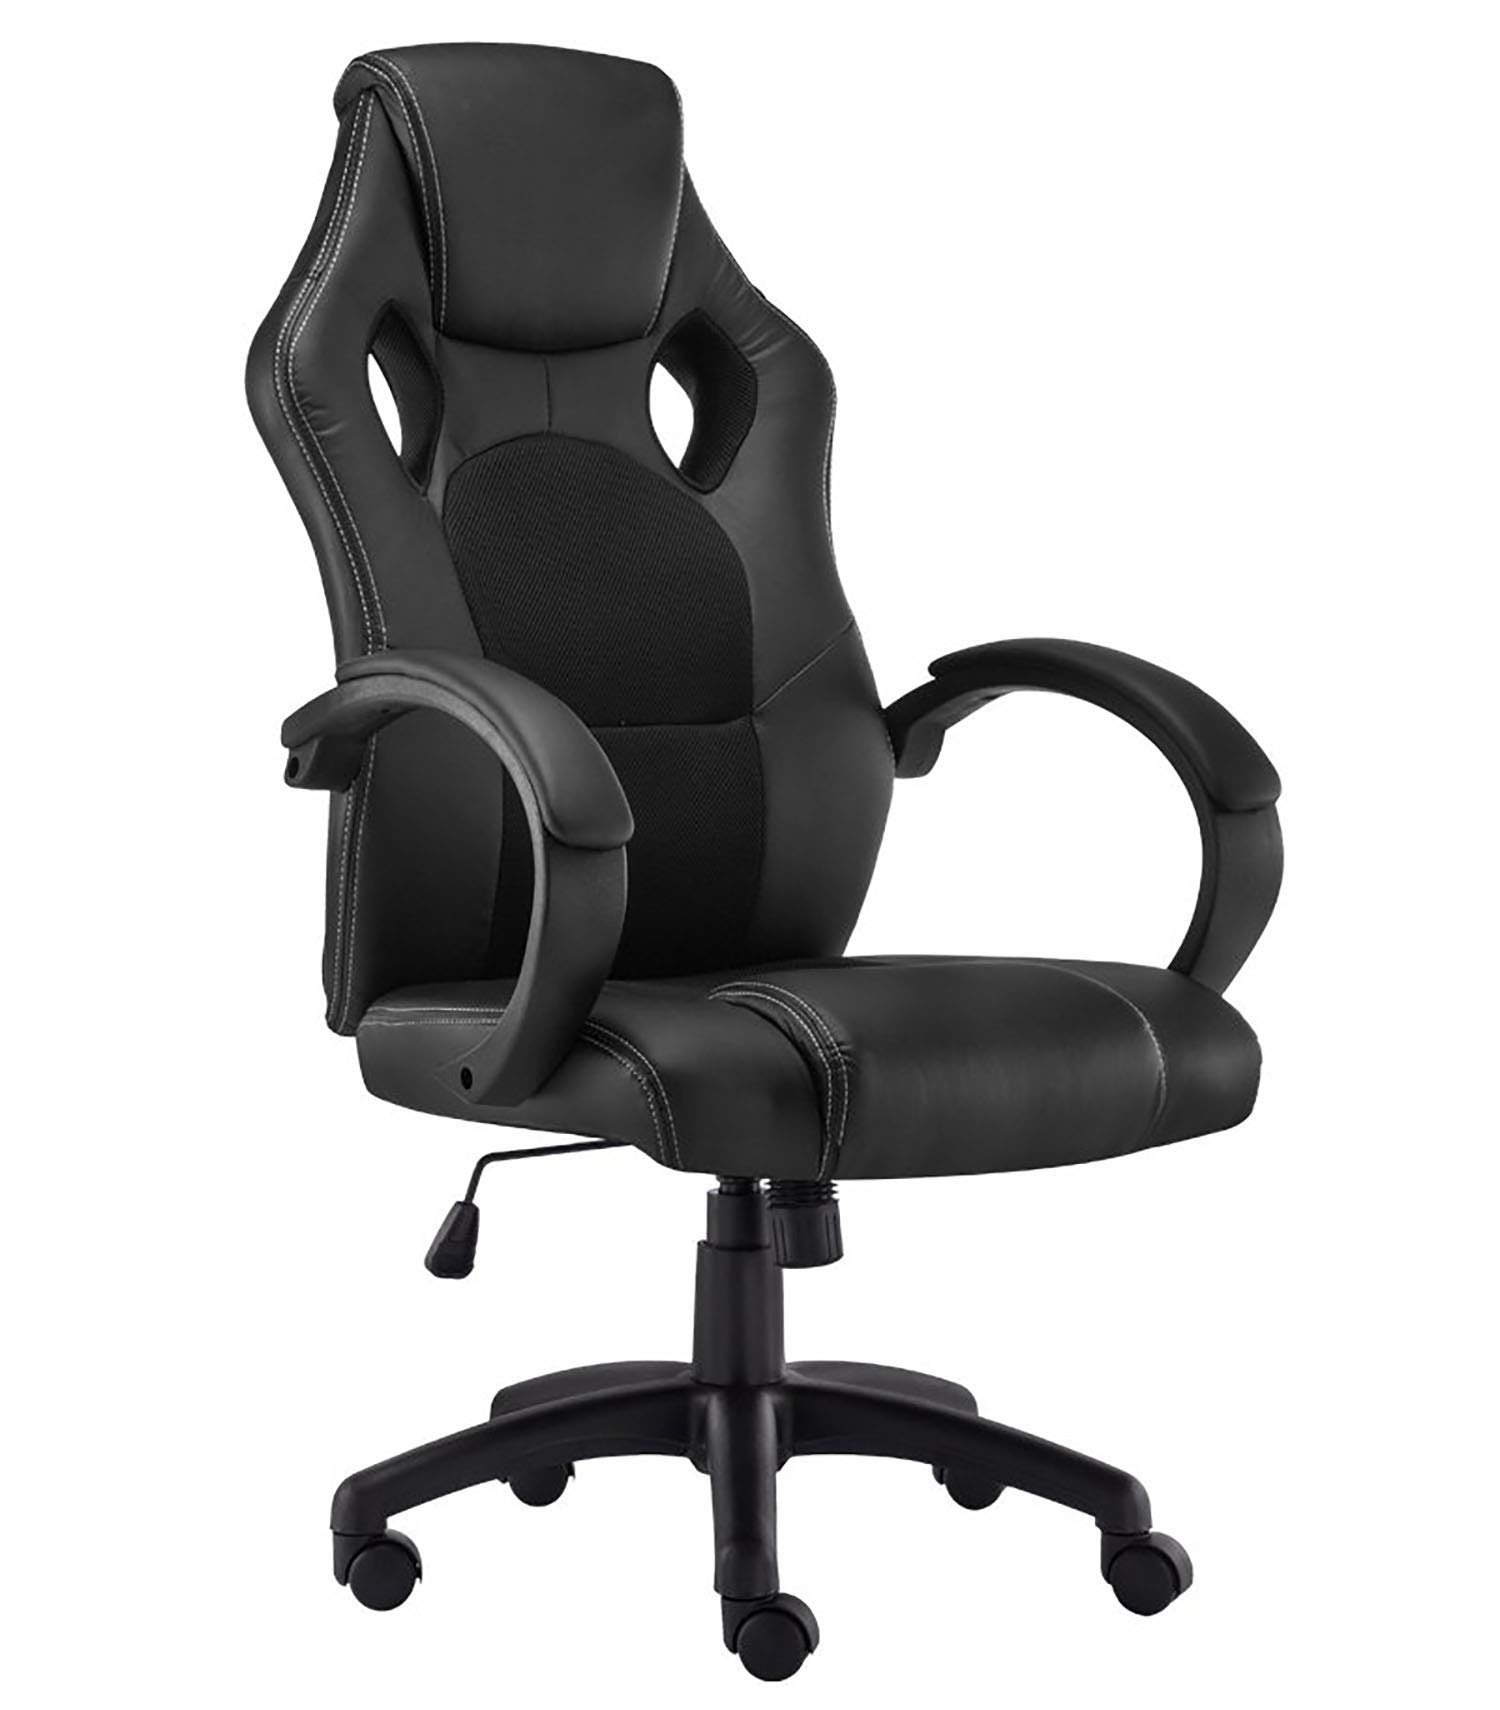 Gaming Chair Racing Style Office Swivel Computer Desk Chair Ergonomic Conference Chair Work Chair with Lumbar Support PU Leatherwith Adjustable Task Chair ,Gas lift SGS tested play haha Yellow